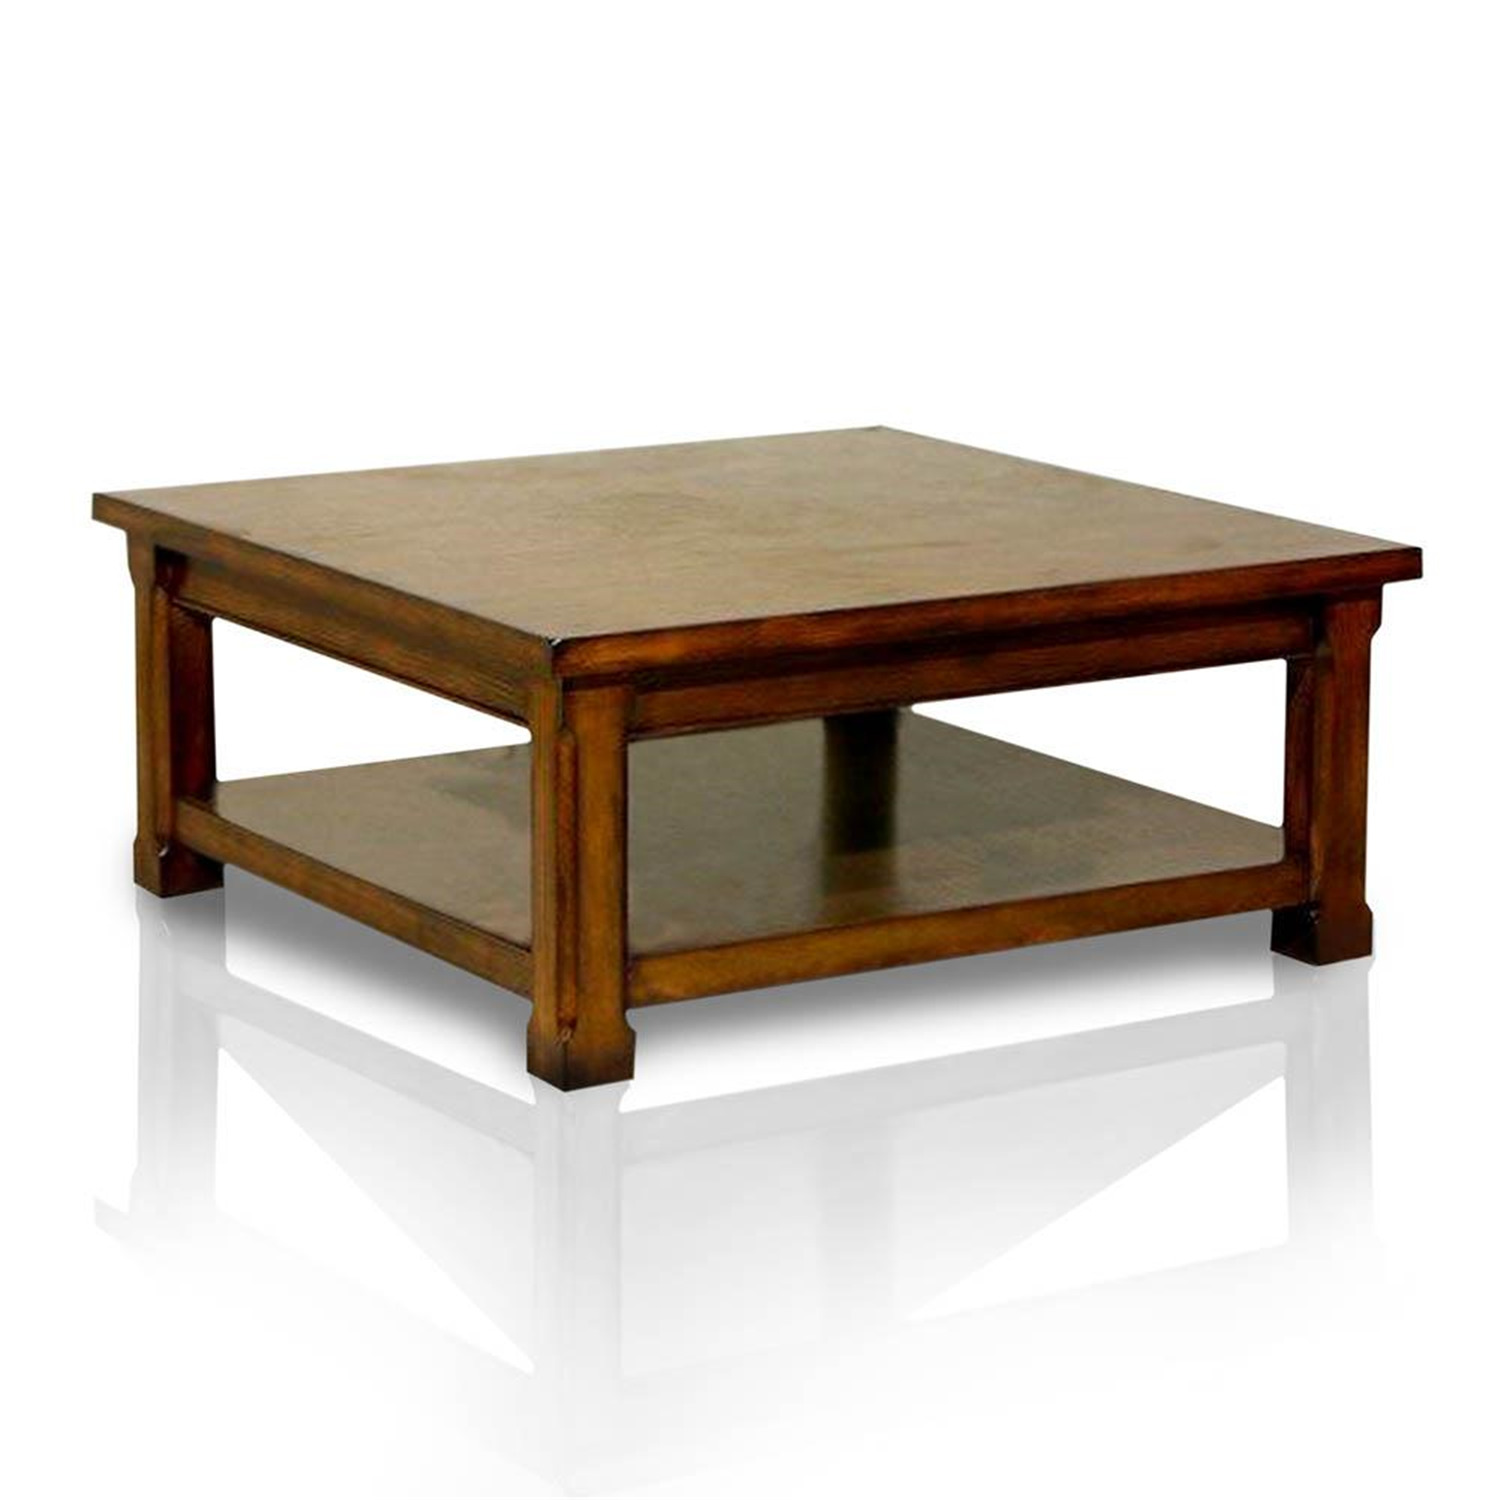 Coe limited square low coffee table by oj commerce Low coffee table square